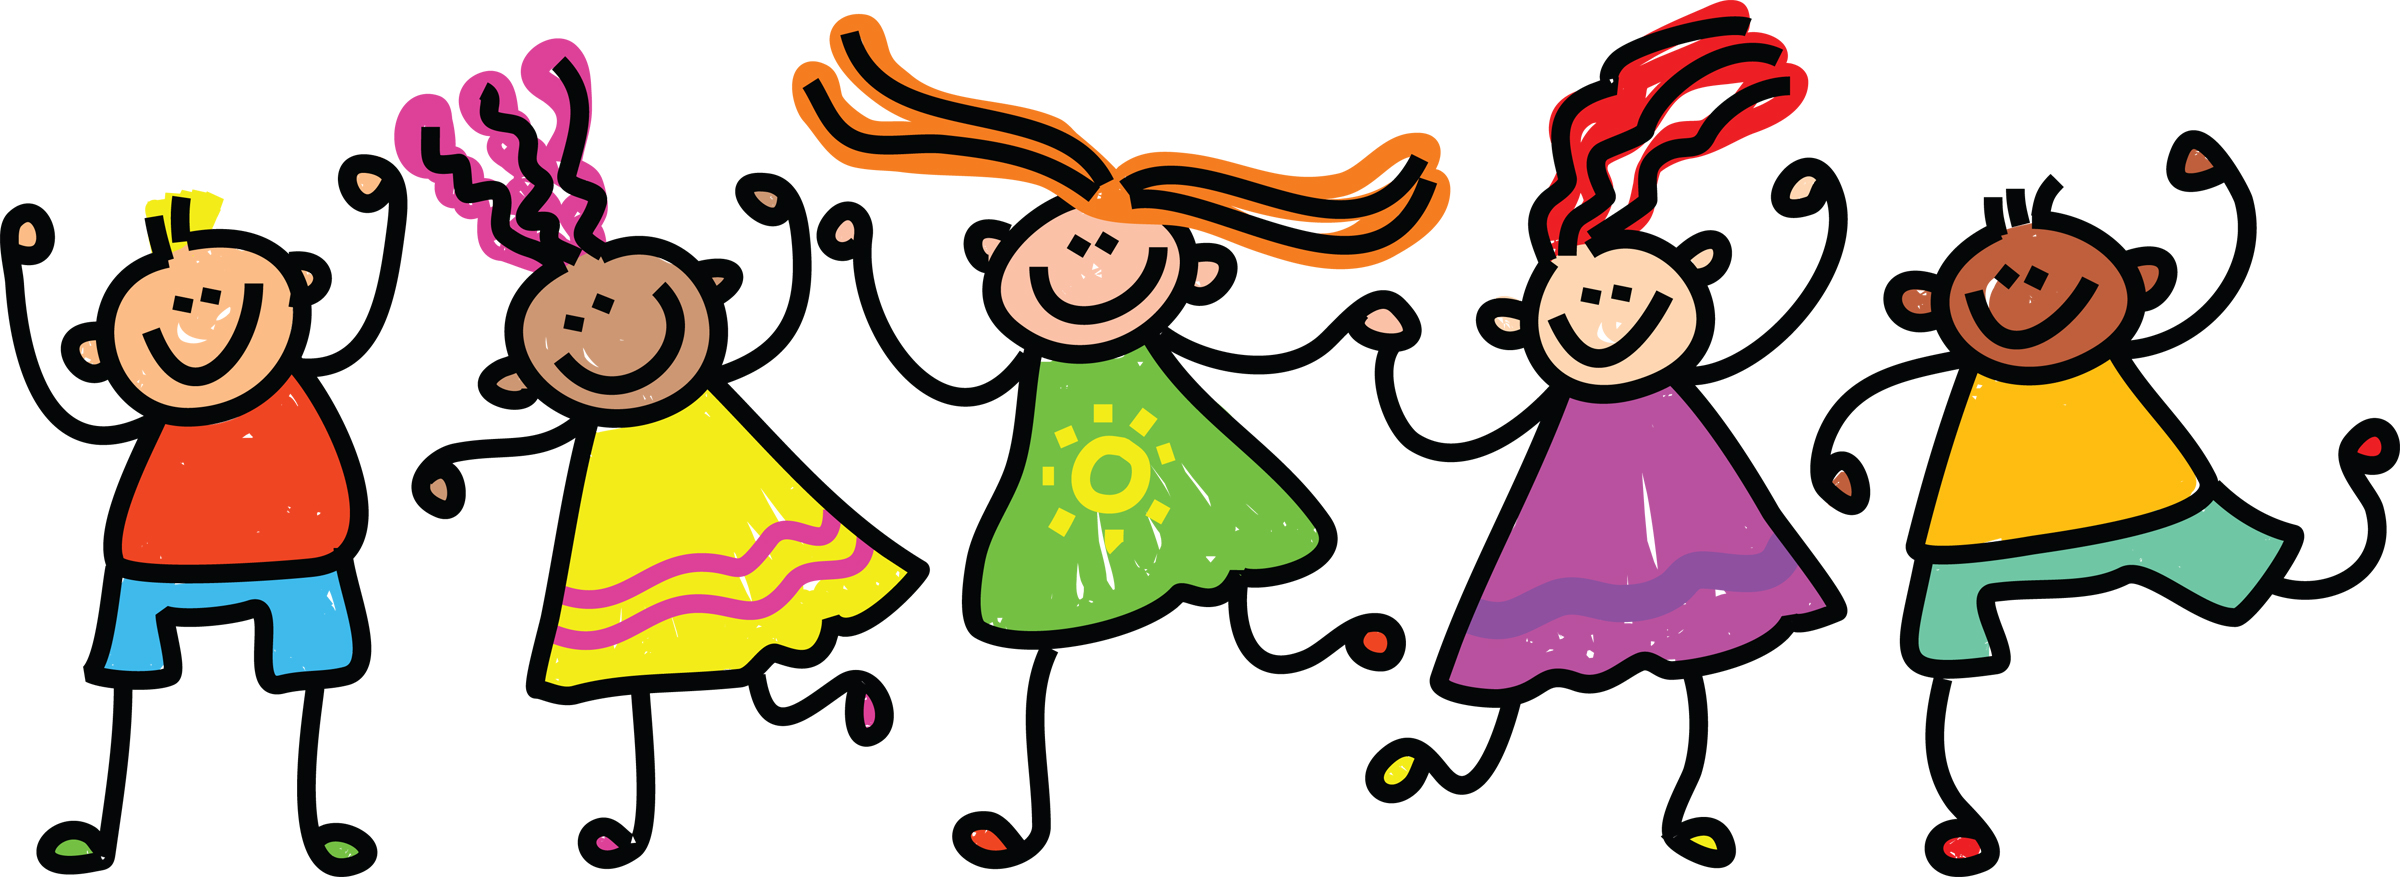 Happy Kids Dancing Clipart | Clipart Panda - Free Clipart Images